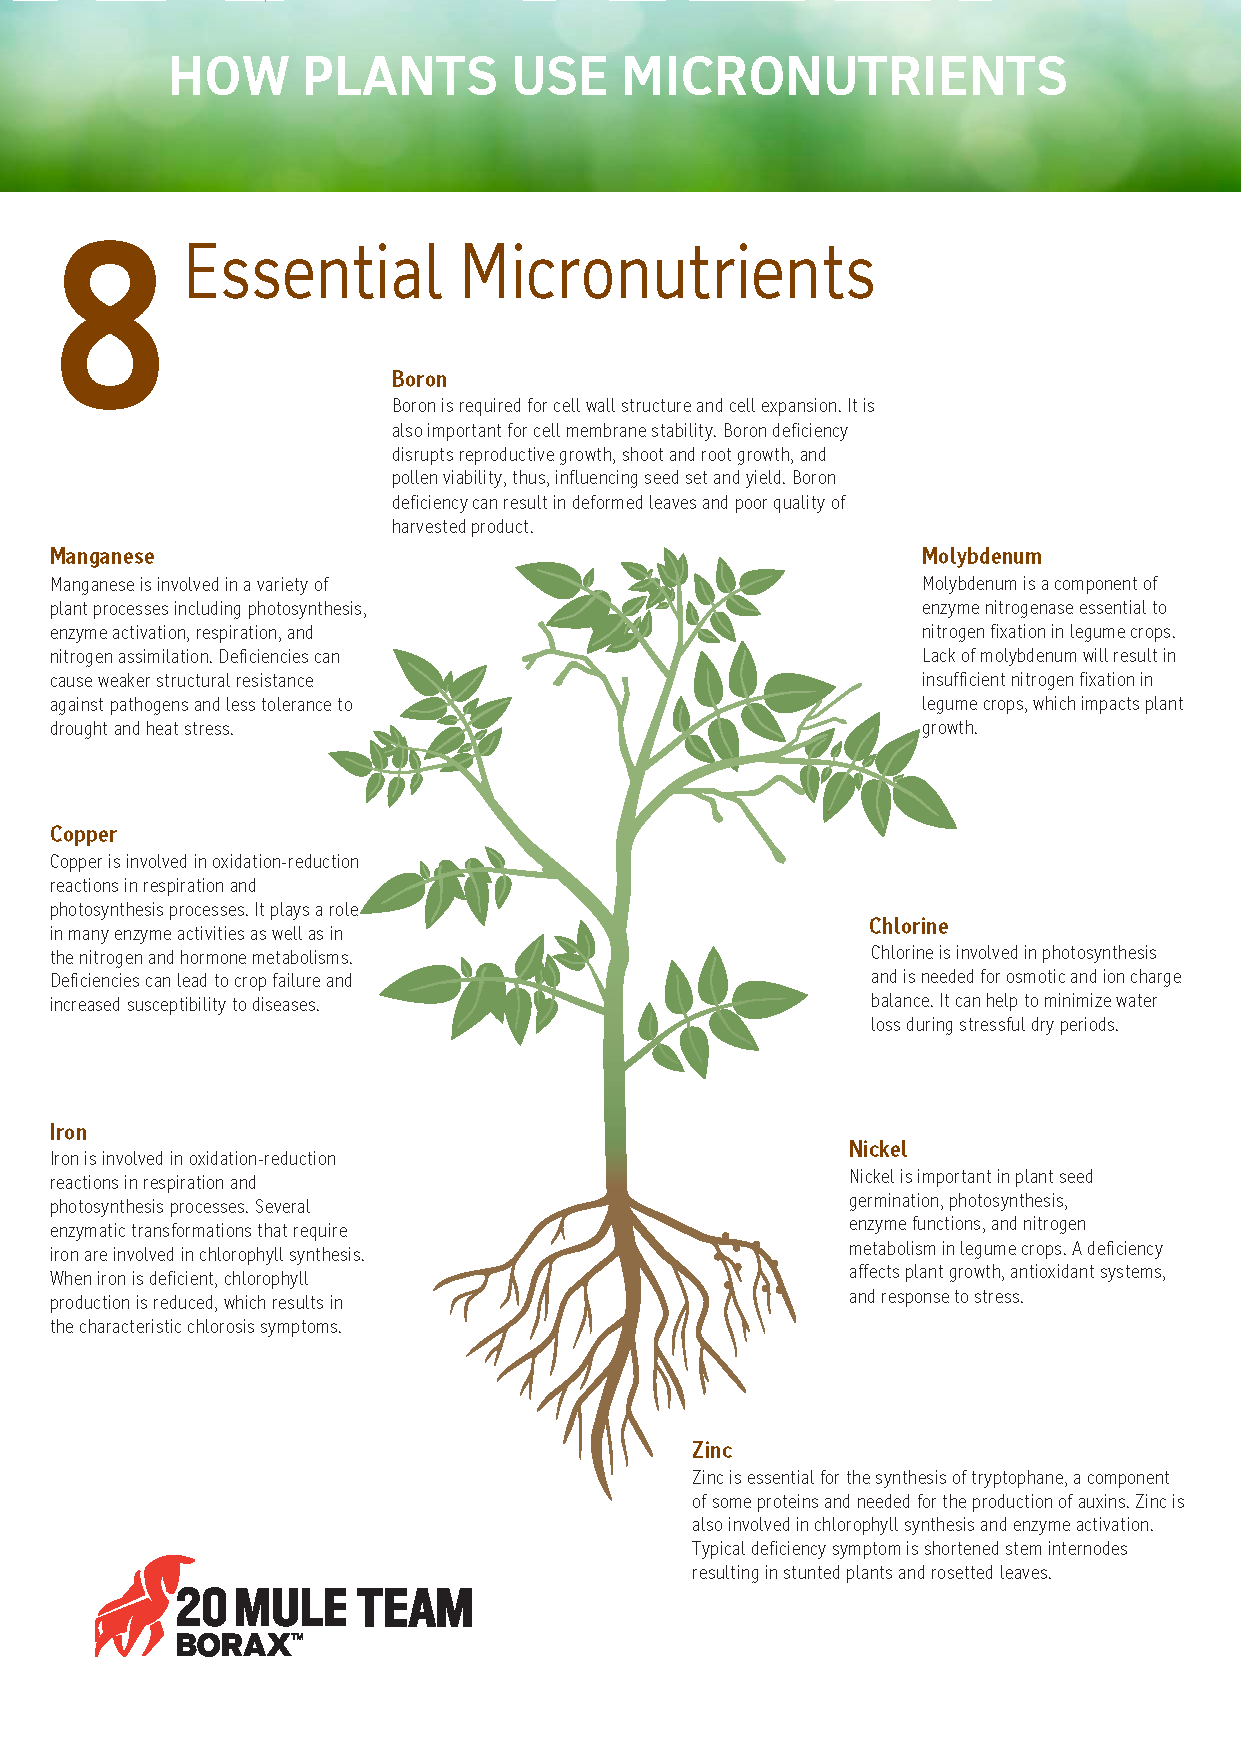 Eight essential micronutrients and how plants use them